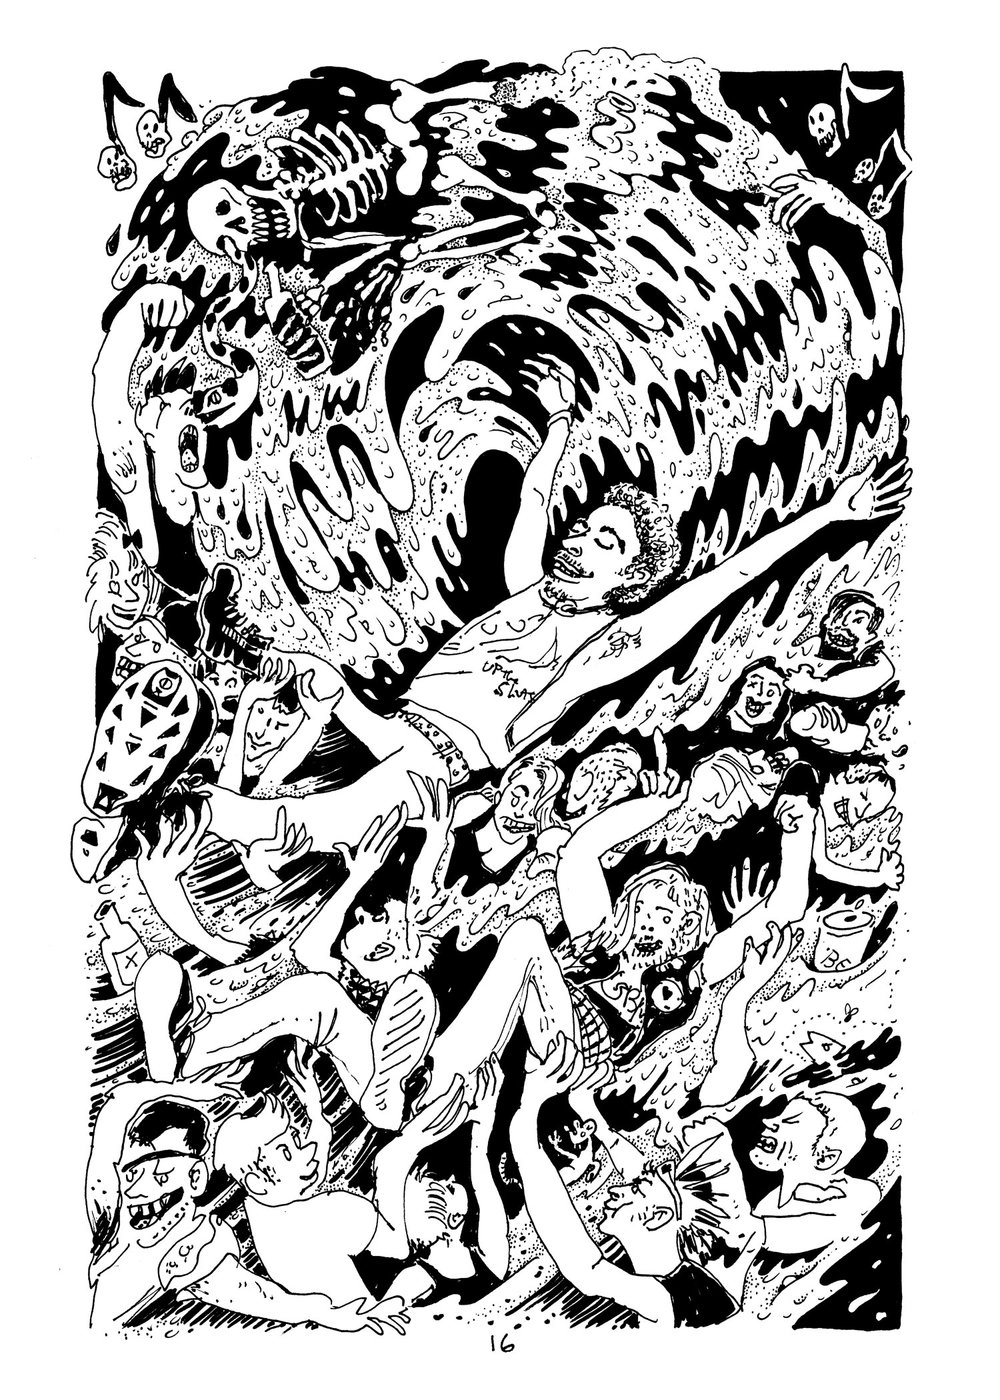 skull_quest_issue_3_page16.jpg